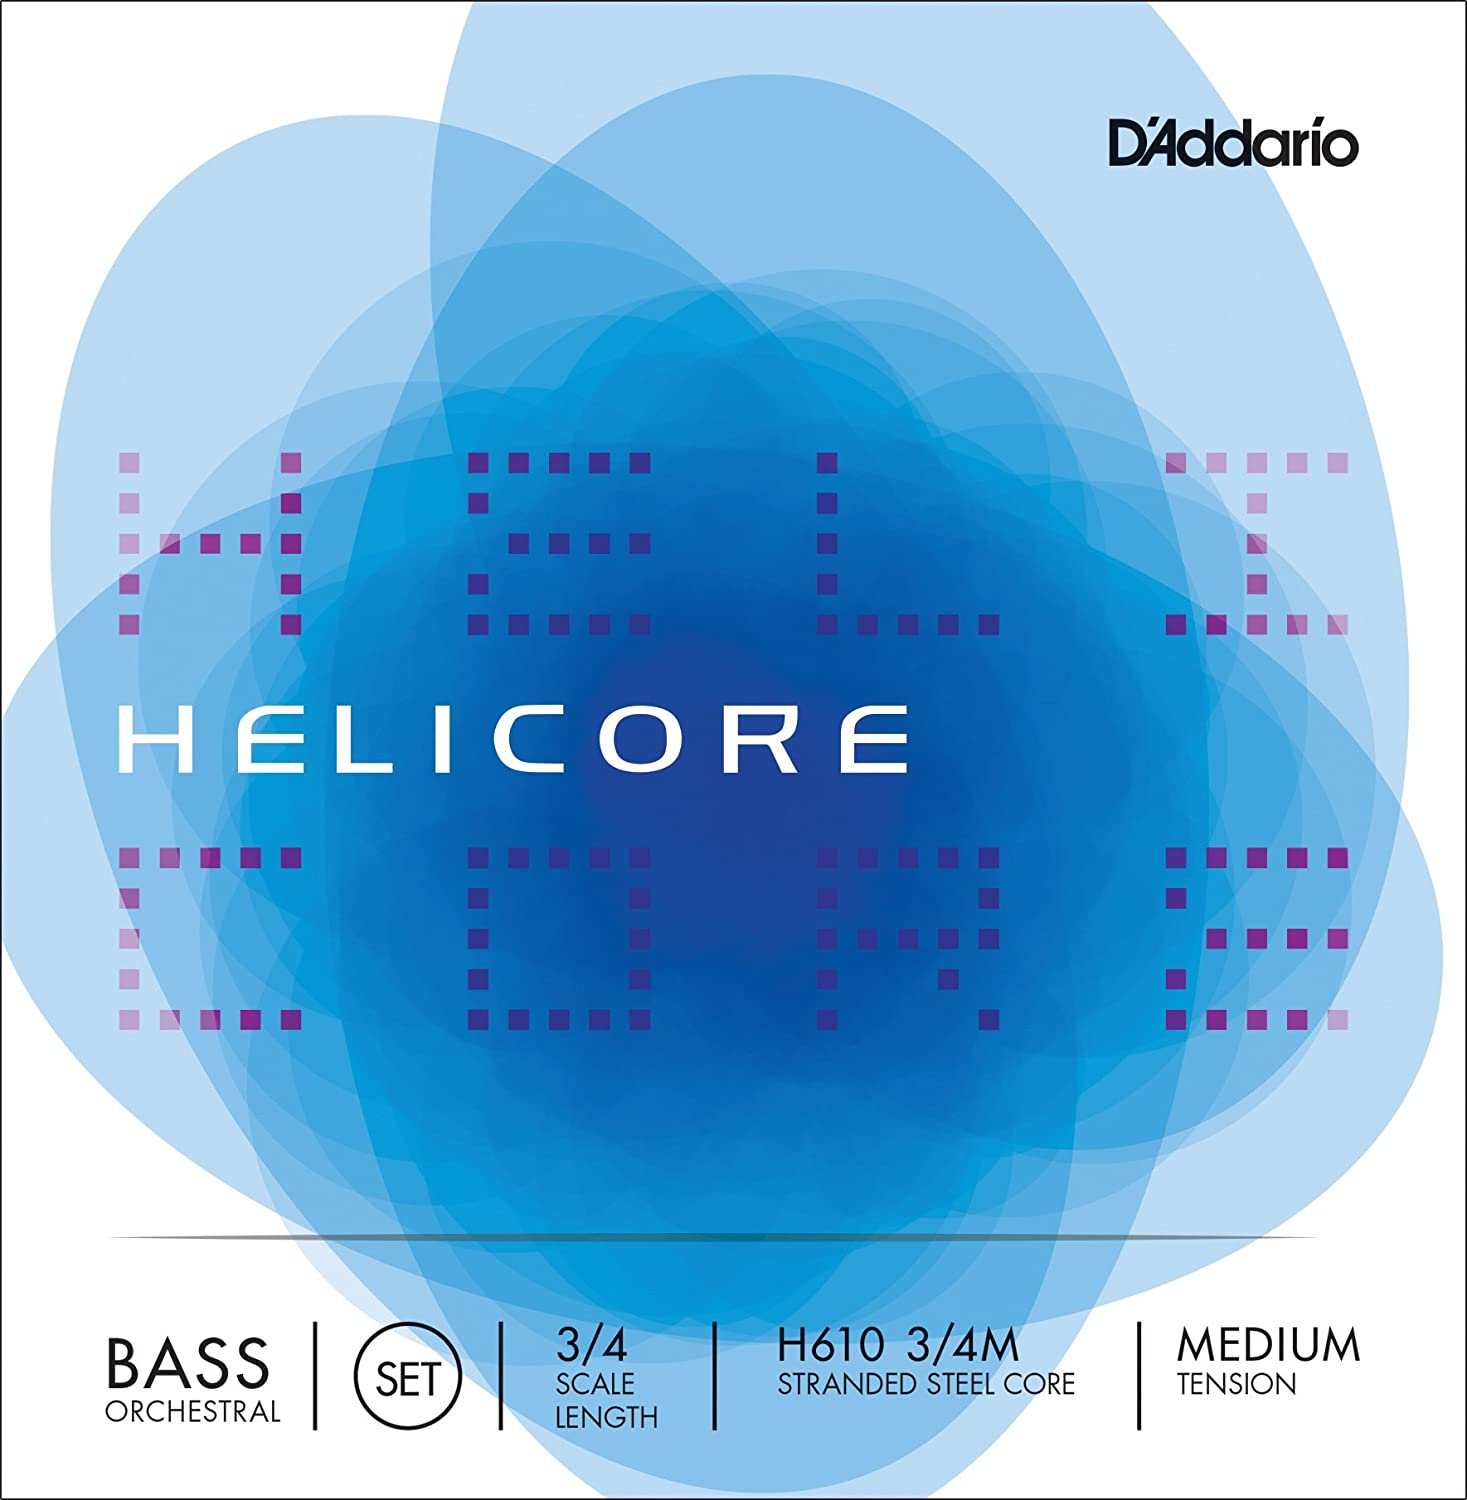 B0002CZW4K D'Addario Helicore Orchestral Bass String Set, 3/4 Scale, Medium Tension 714jg5uHn0L